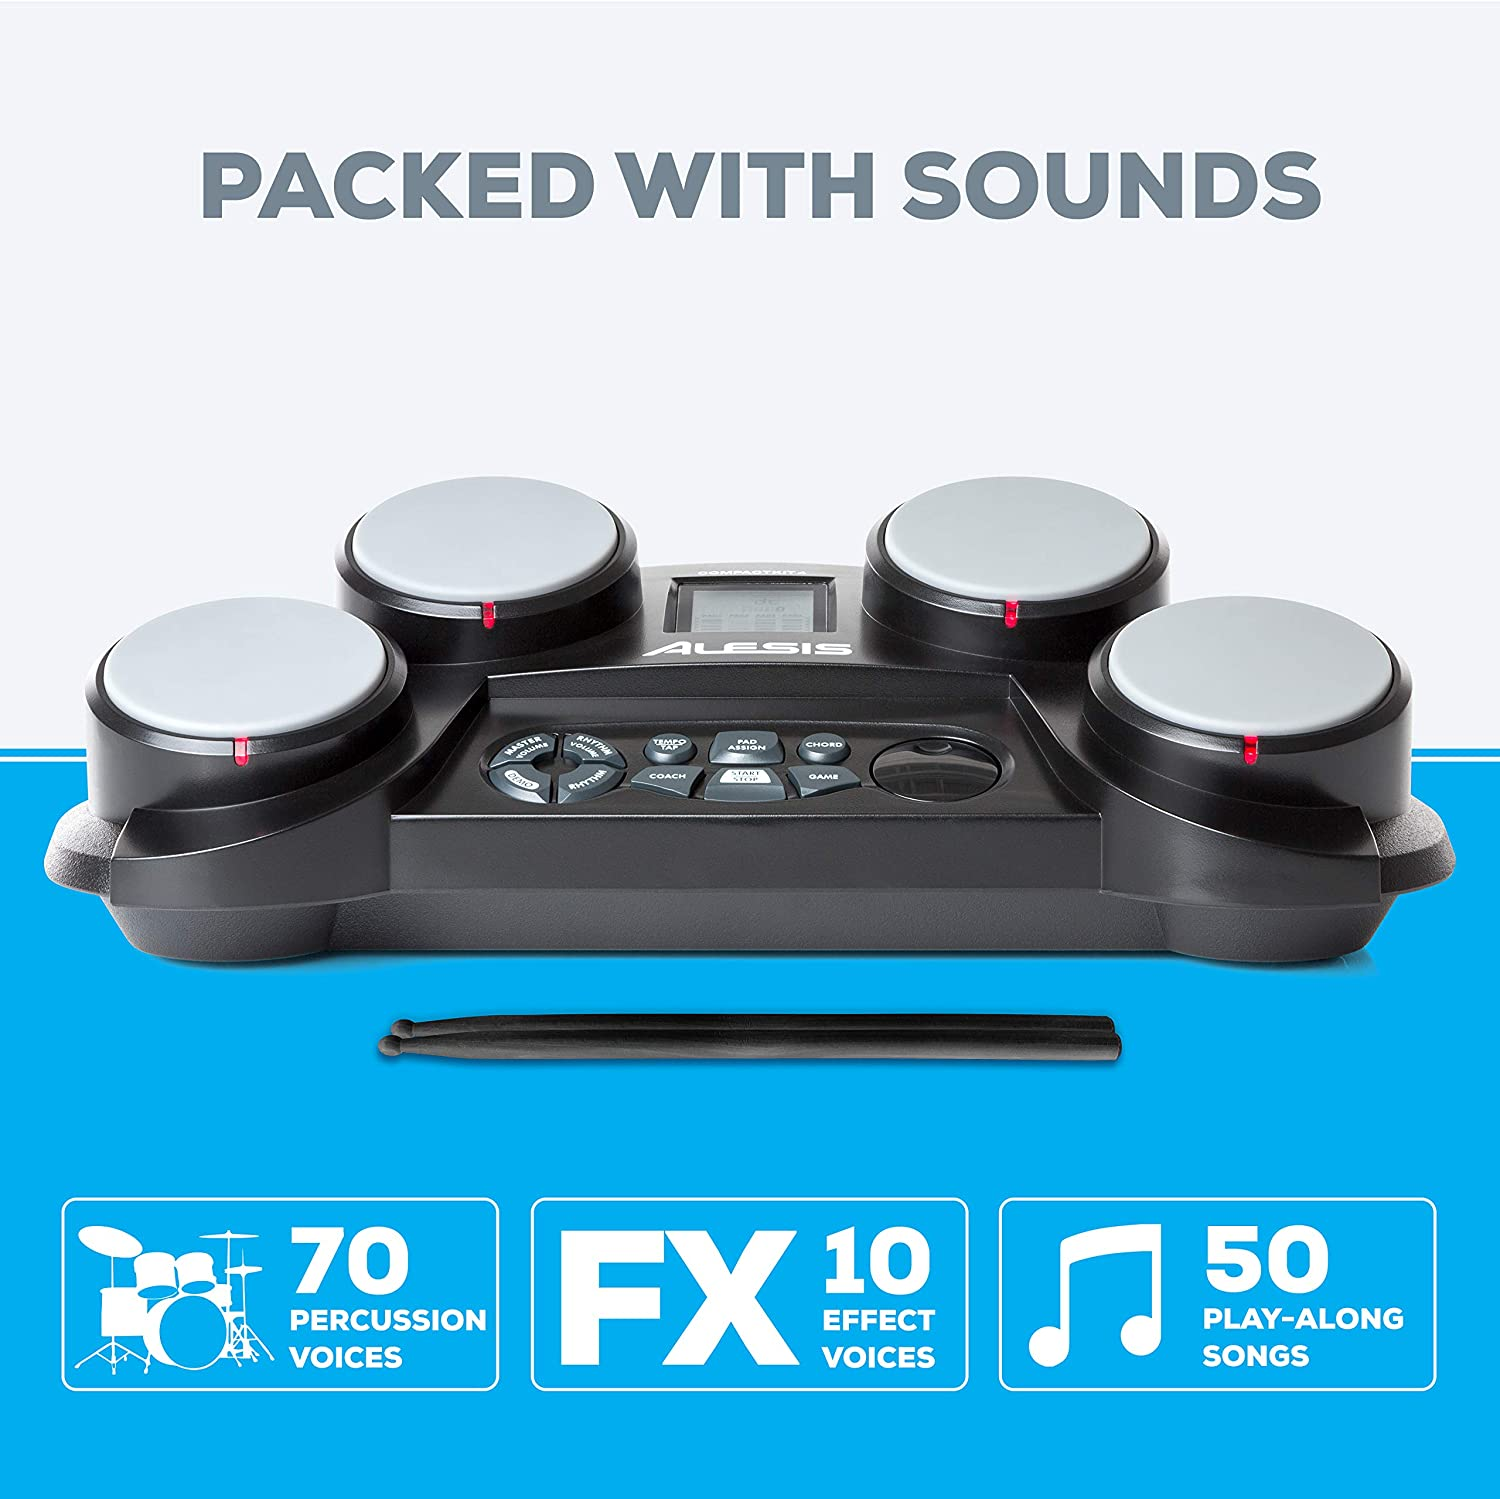 The 50 play-along songs Alesis Compactkit 4